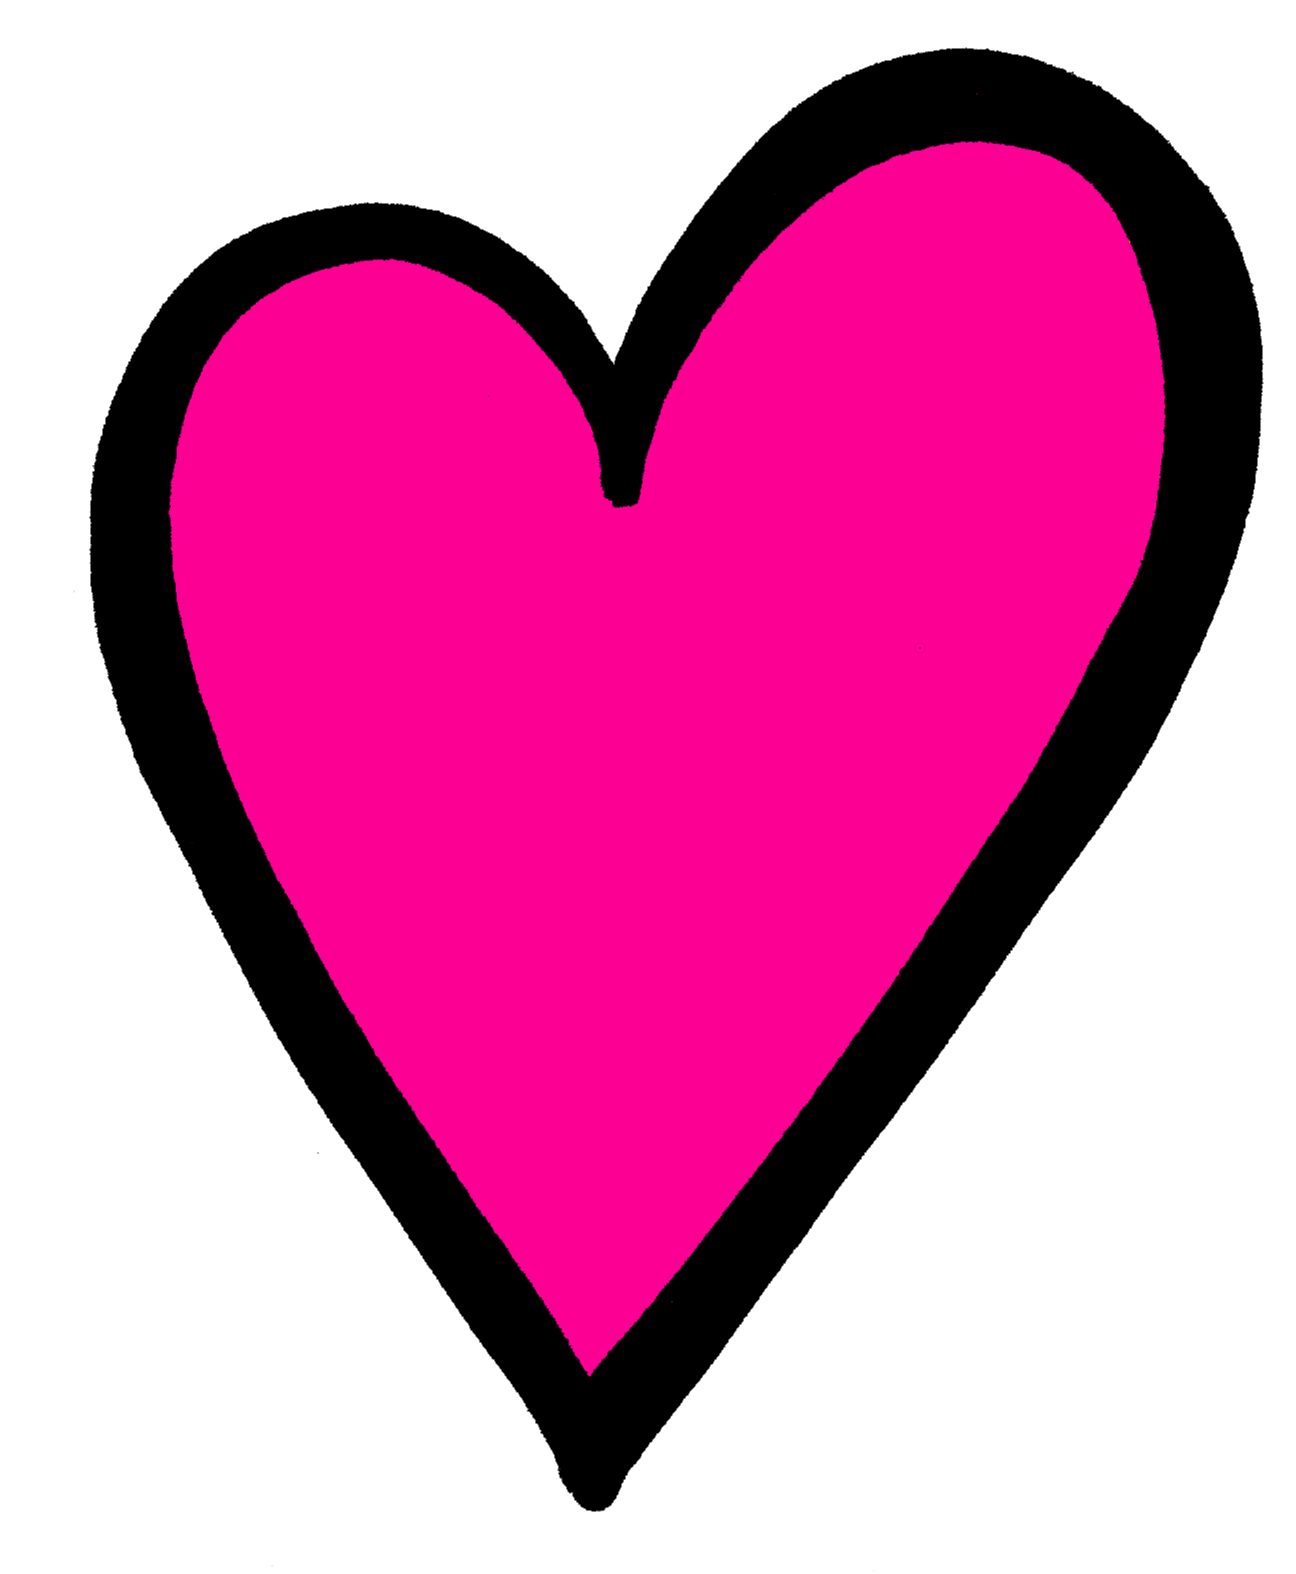 Pink Heart Png And placed them on heartsPink Heart Outline Png